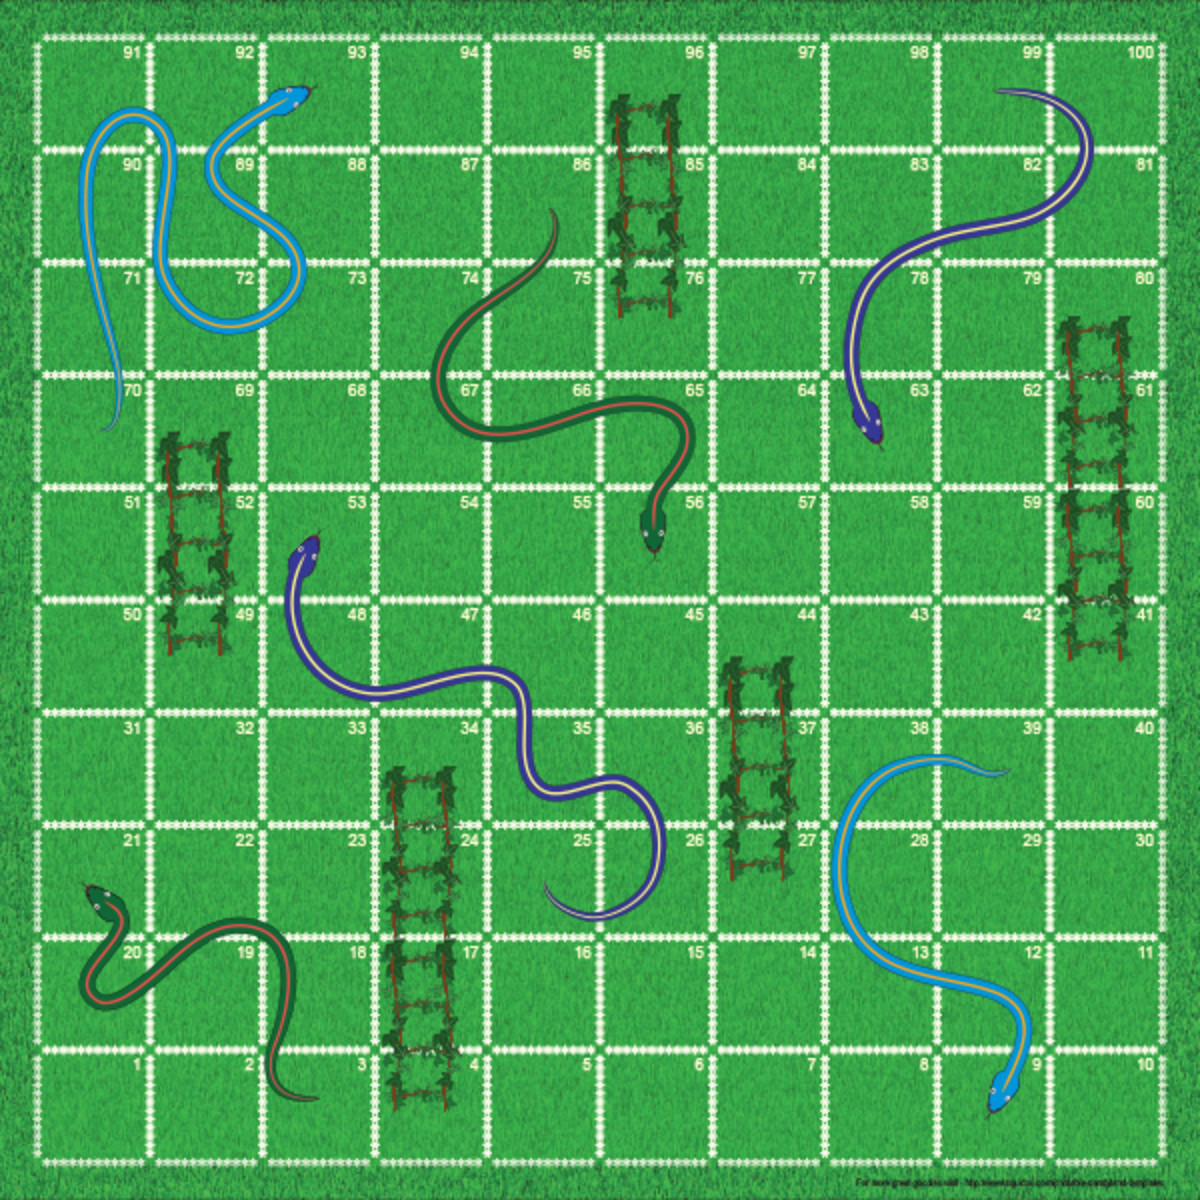 Chutes and Ladders or Snakes and Ladders